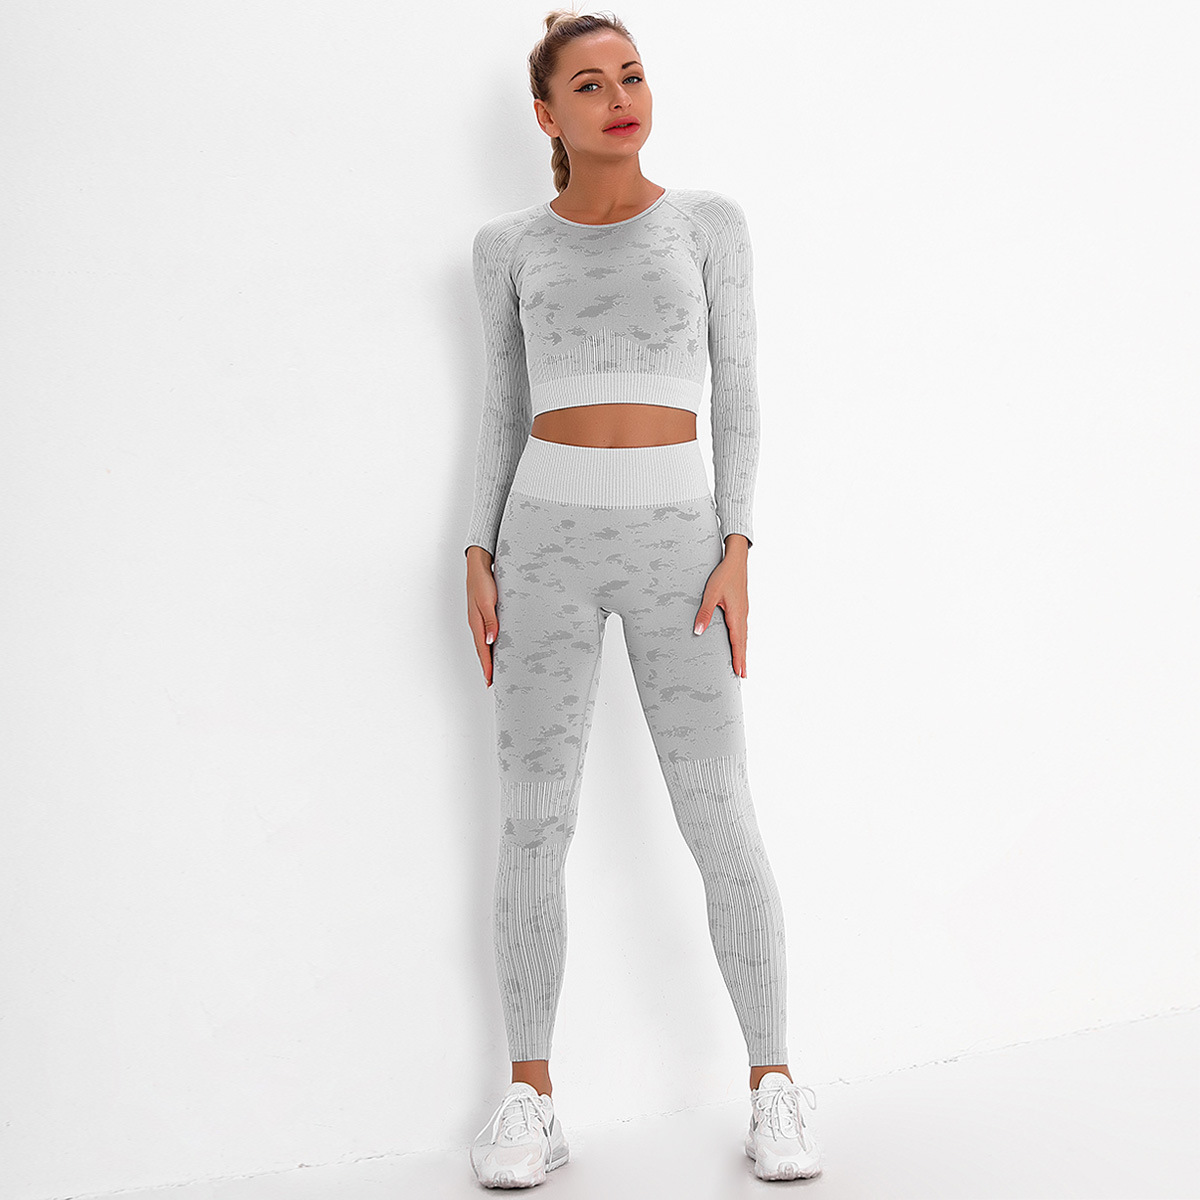 high quality women long sleeve jacquard yoga jacket sets ladies fitness top and leggings 2 piece